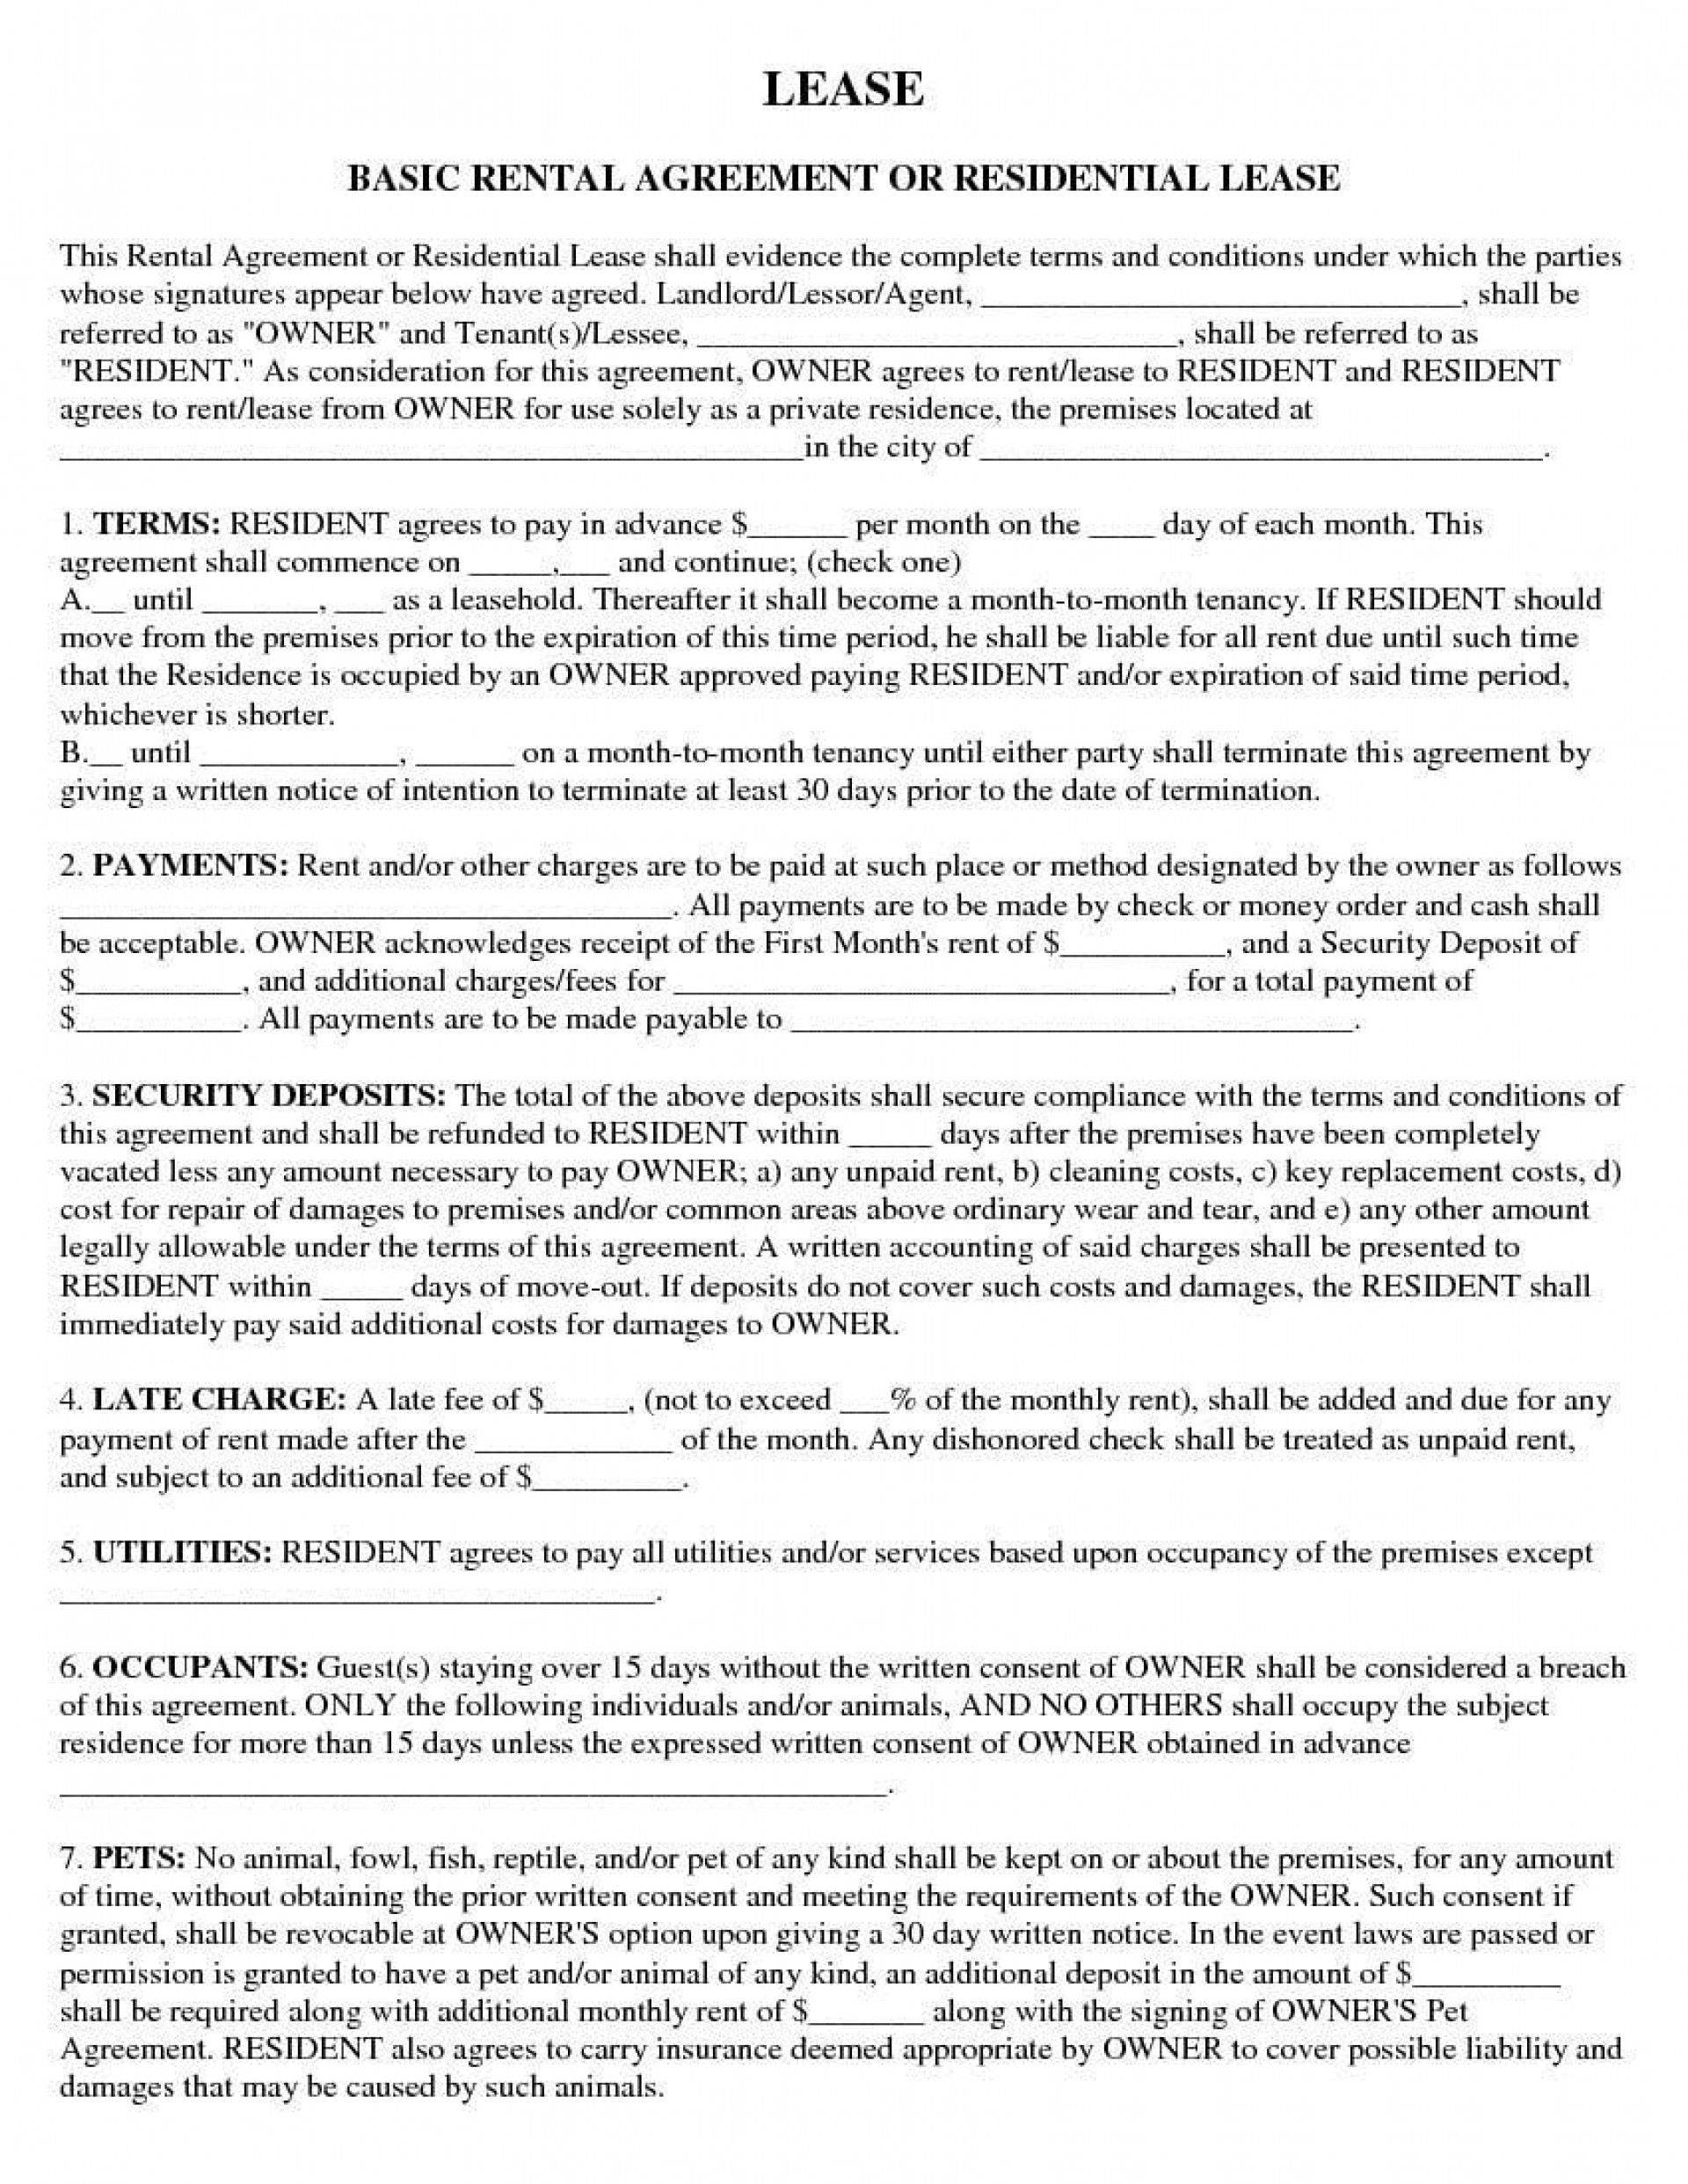 002 Sensational Apartment Rental Agreement Form Design  Forms Lease Ontario Format Simple1920